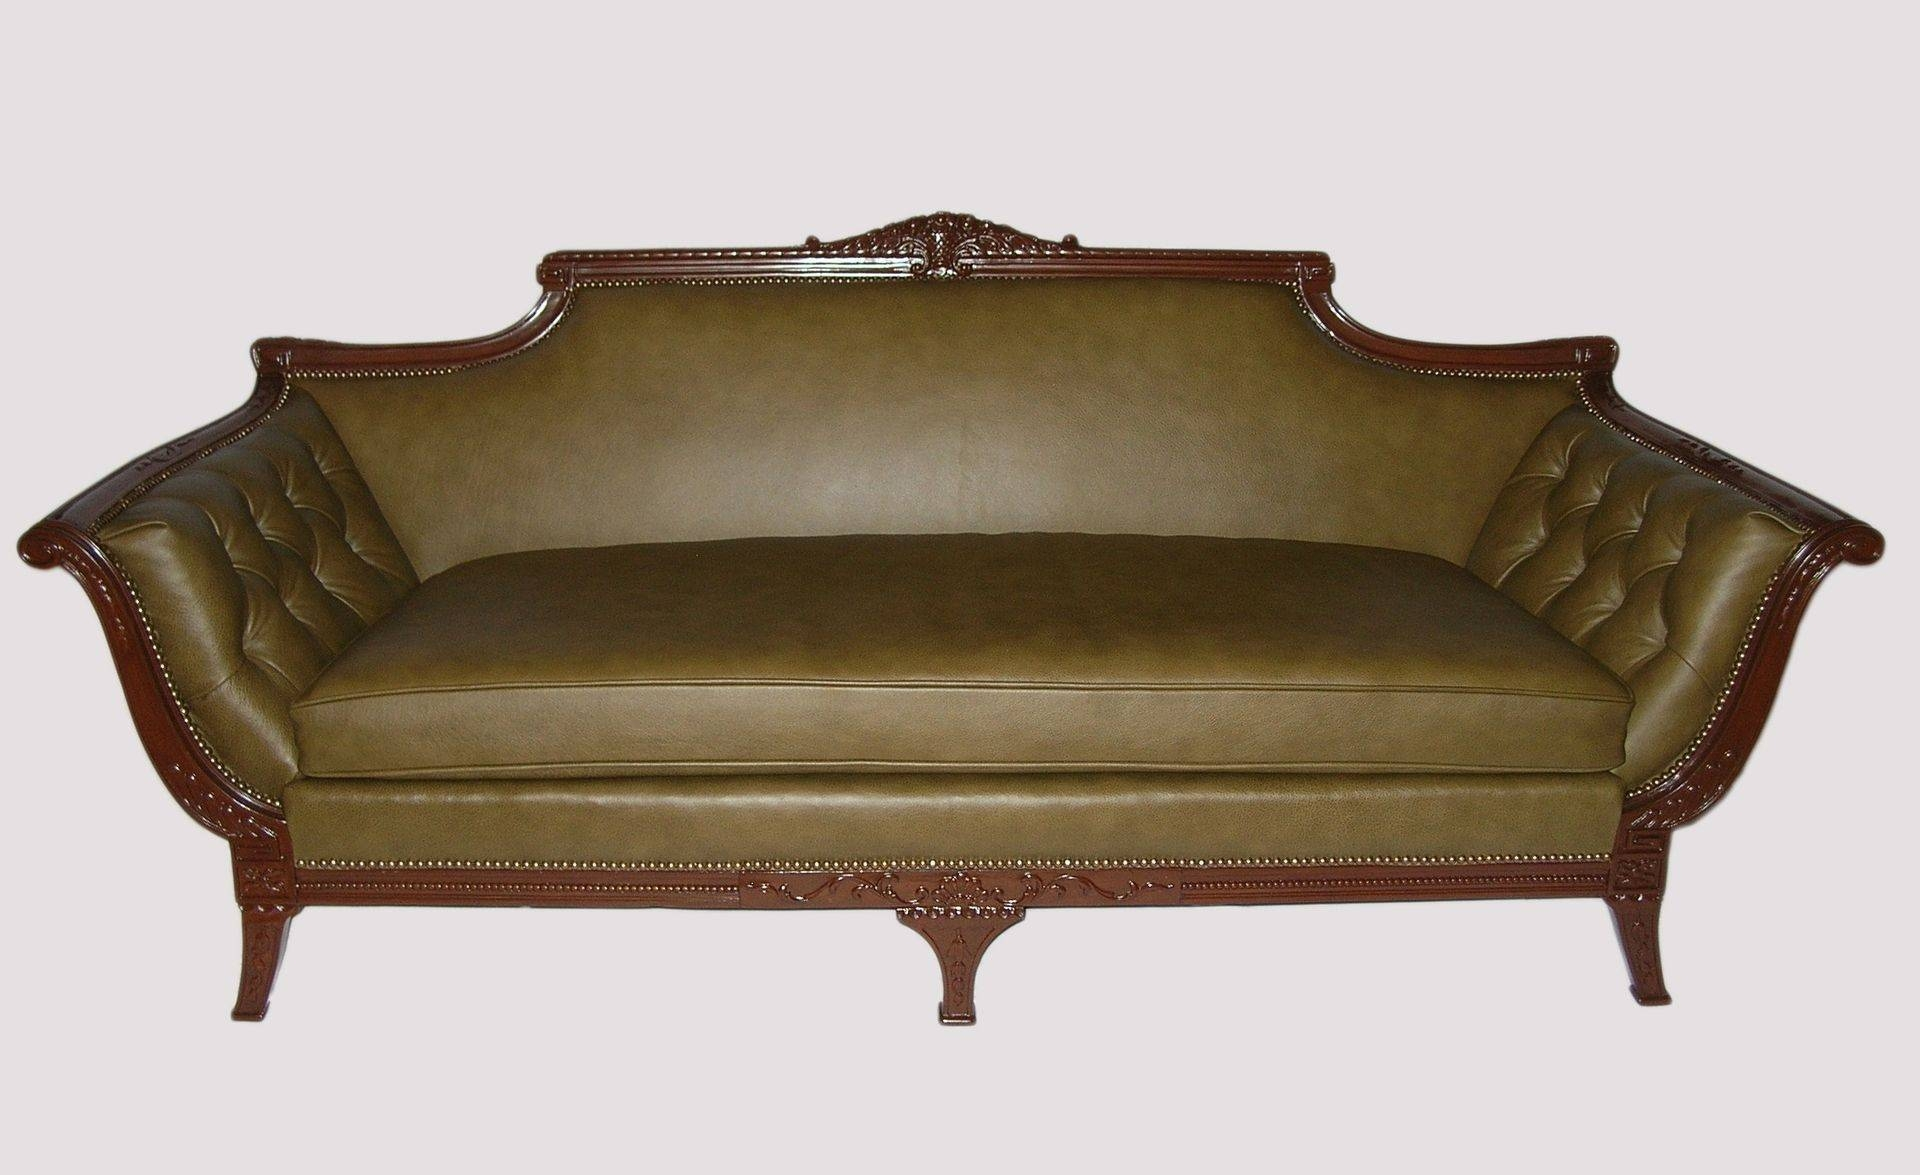 Colonial Sofas 44 With Colonial Sofas | Jinanhongyu with Colonial Sofas (Image 4 of 15)